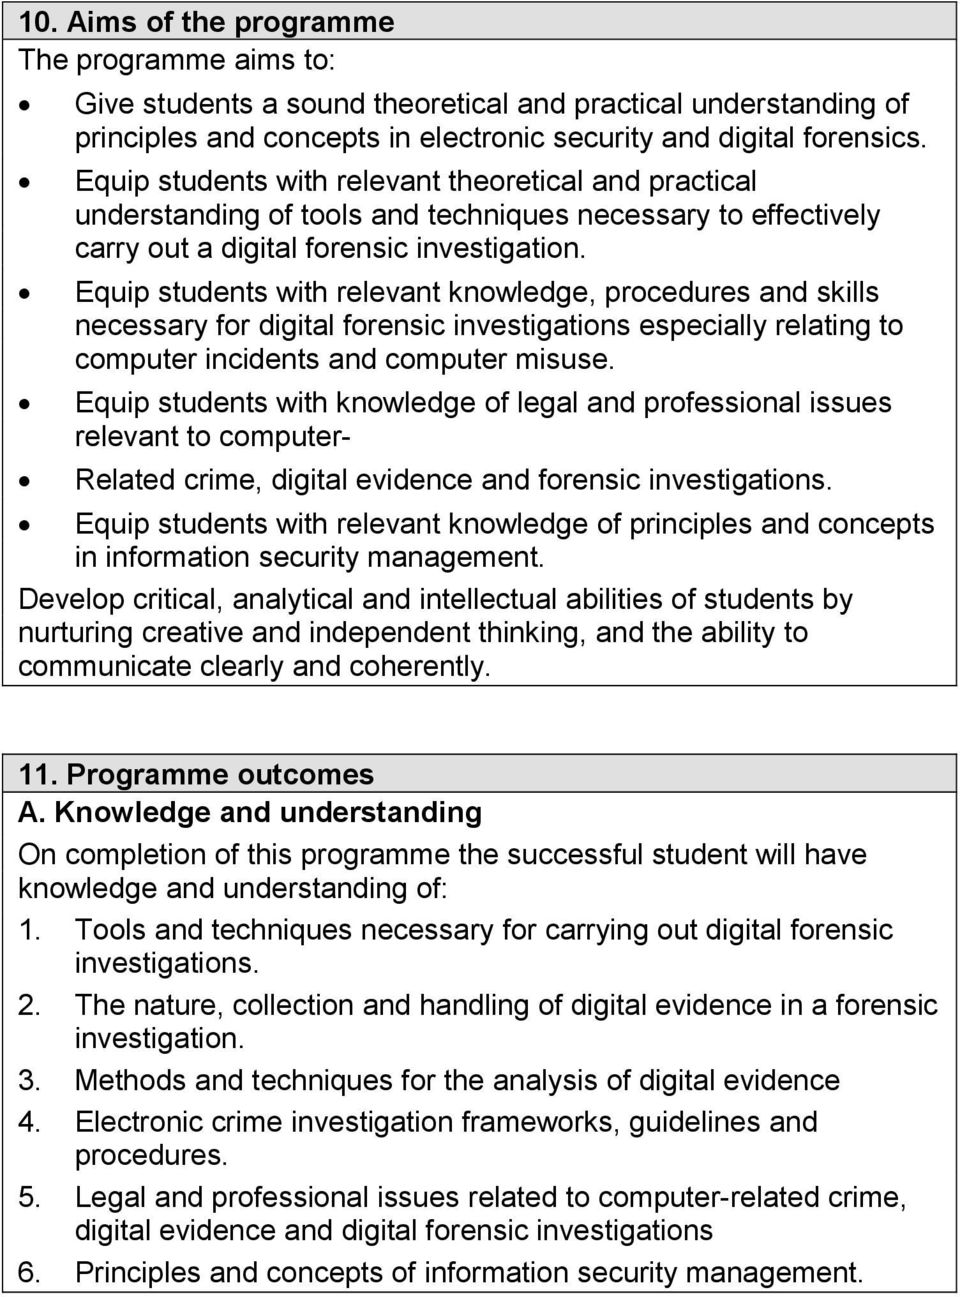 Equip students with relevant knowledge, procedures and skills necessary for digital forensic investigations especially relating to computer incidents and computer misuse.